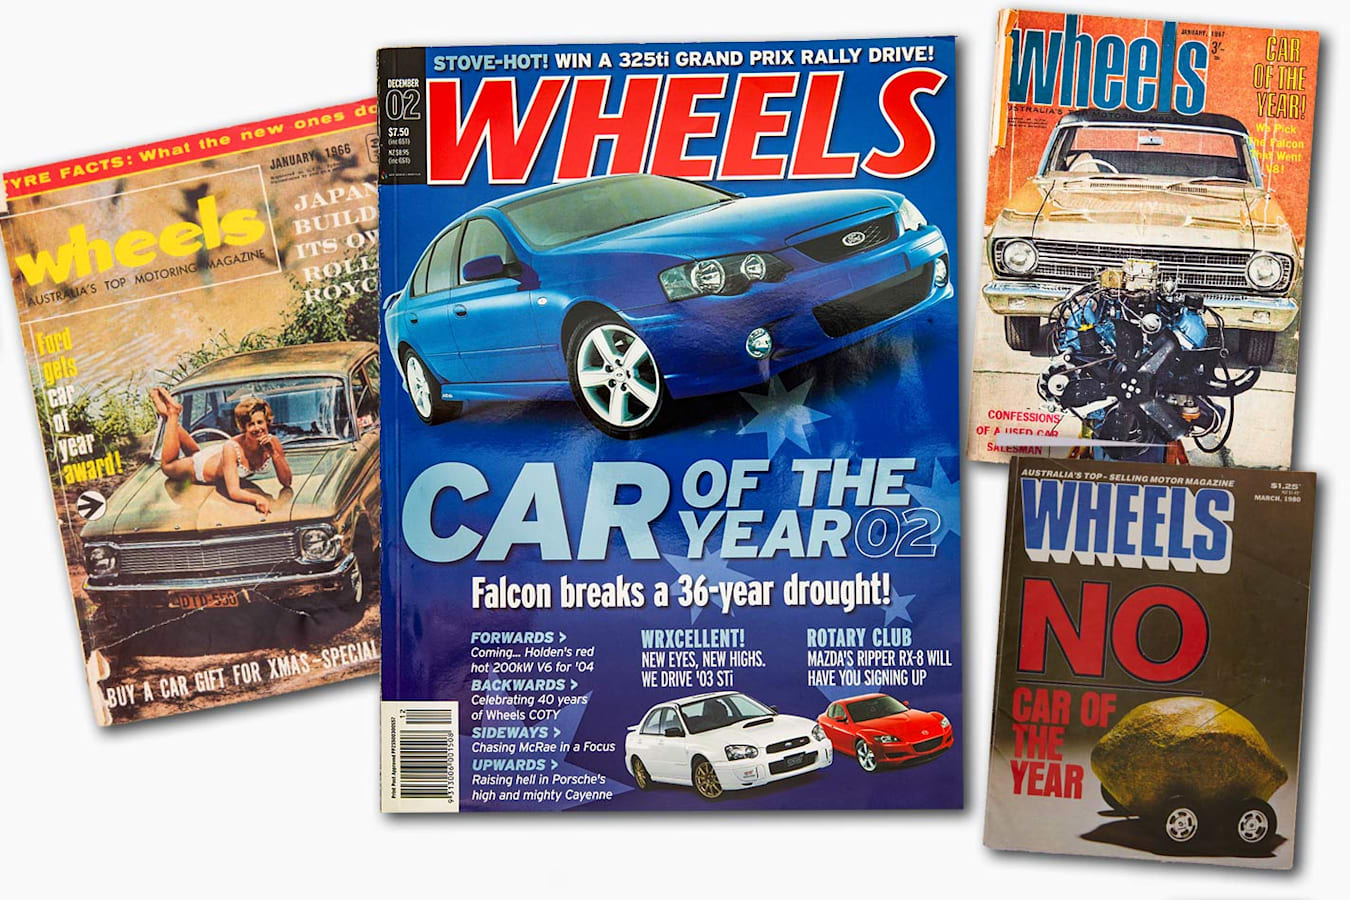 Wheels car of the year